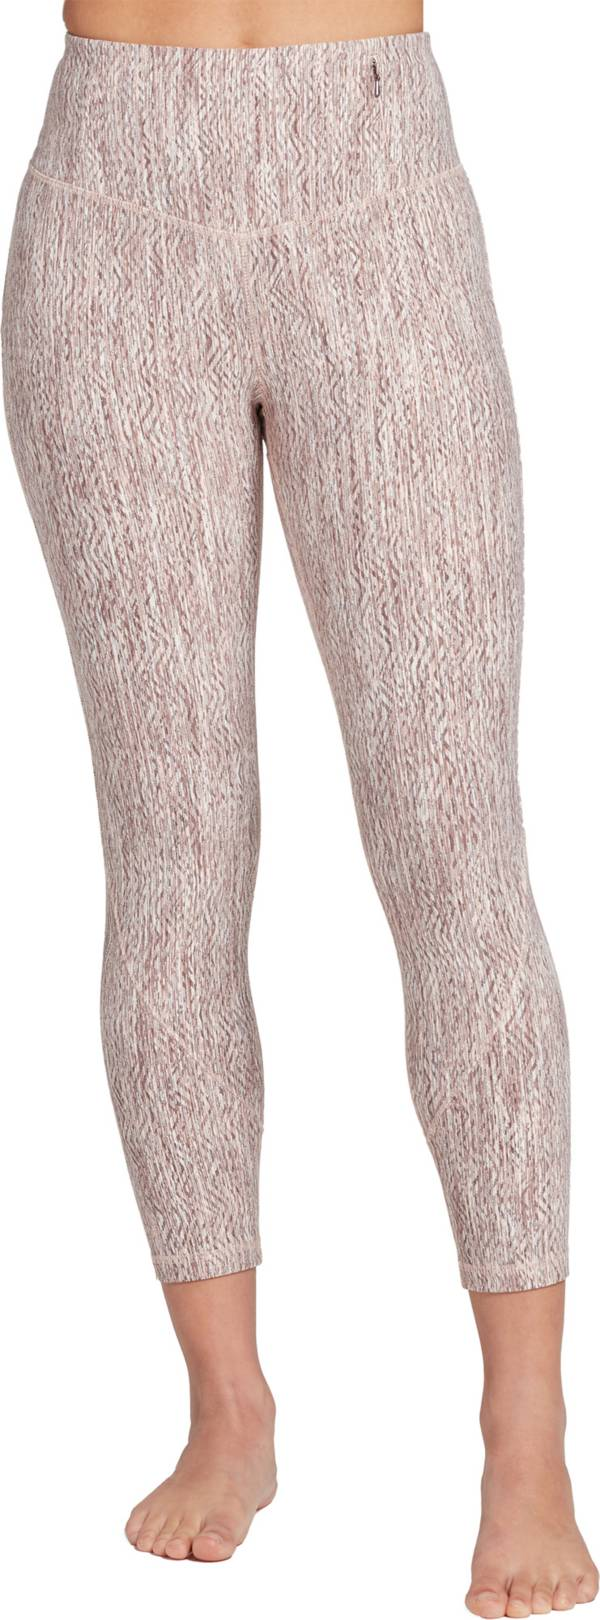 CALIA by Carrie Underwood Women's Essential Jacquard 7/8 Leggings product image